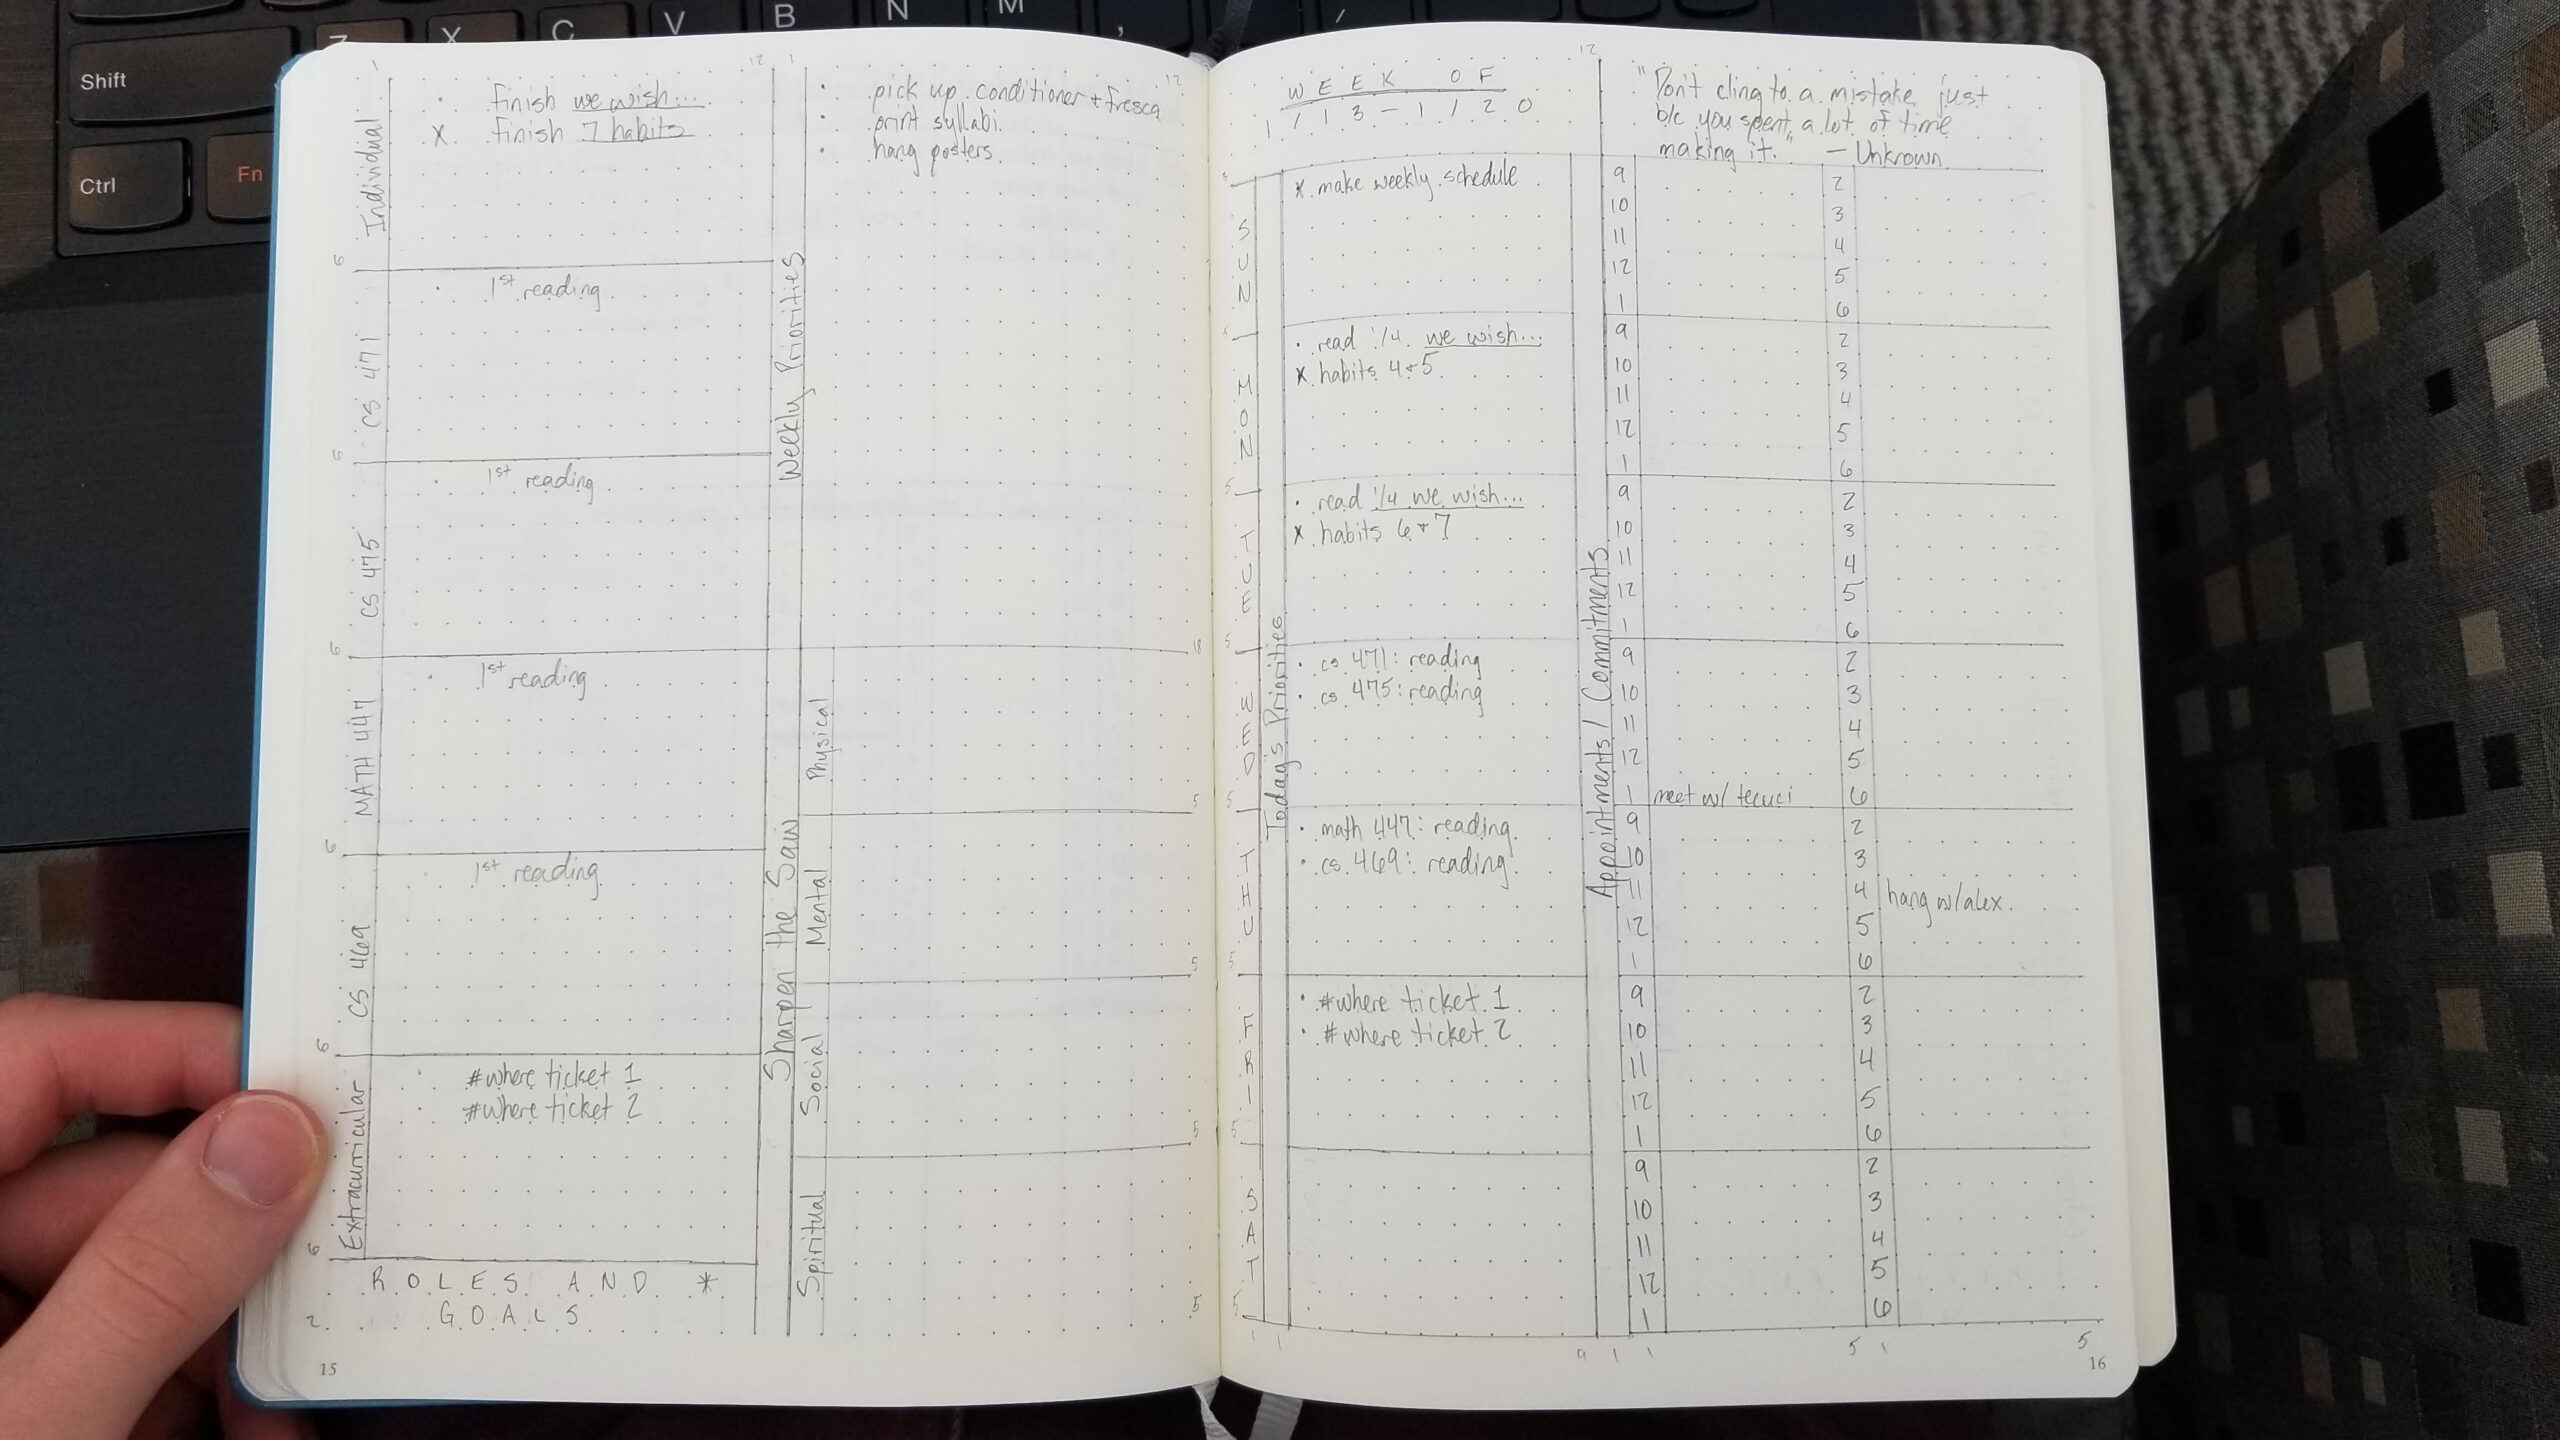 Experimenting With A Franklin Covey-Inspired Weekly Planner